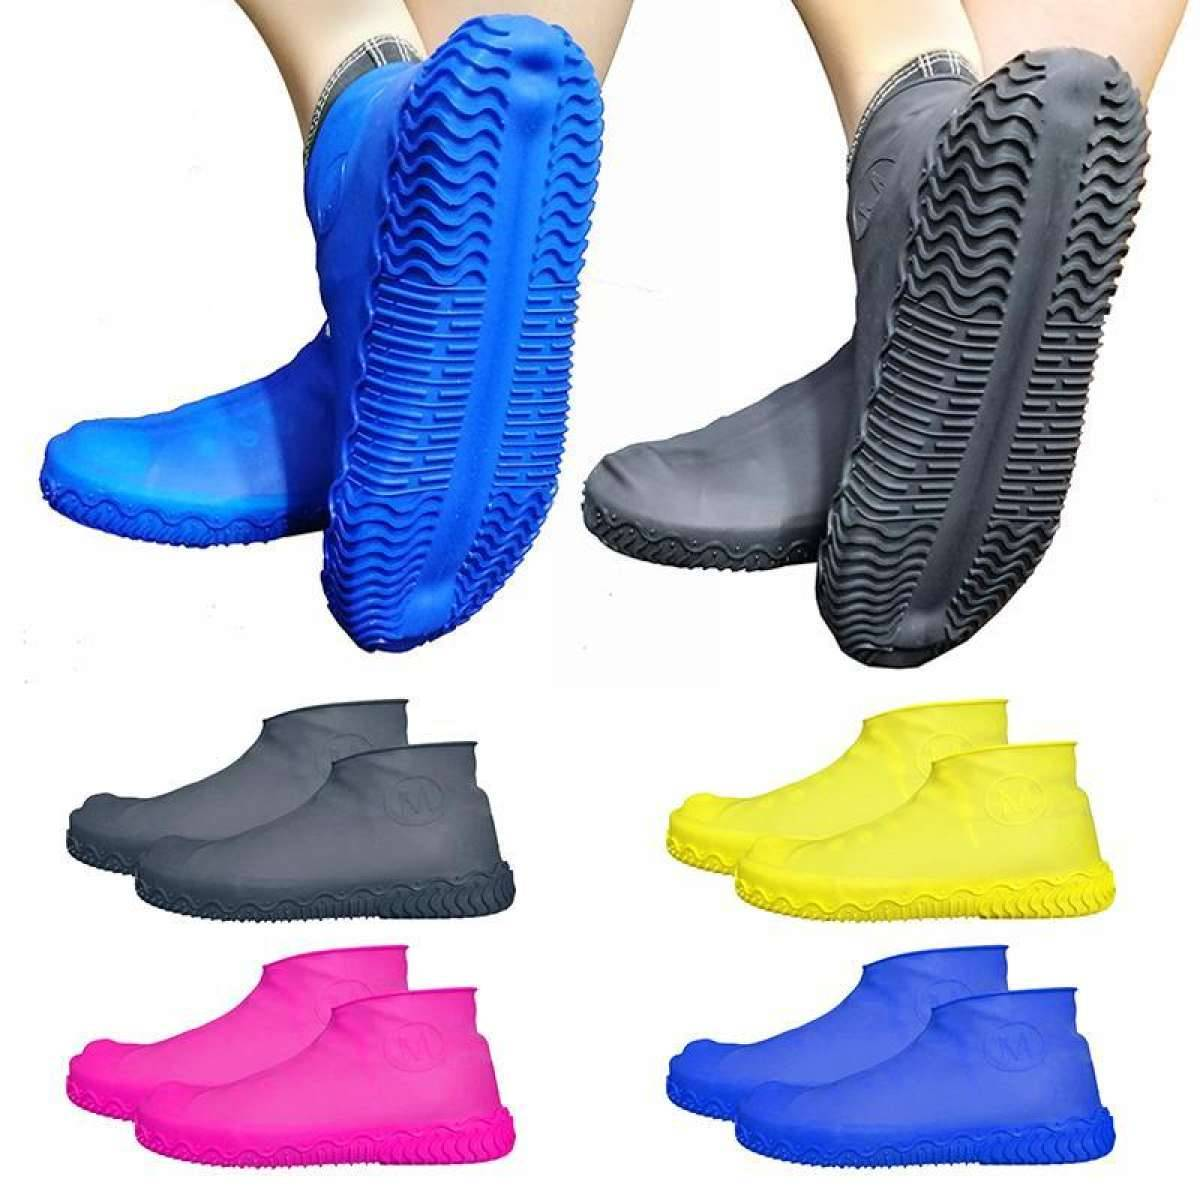 Thicken Waterproof Silicone Gel Shoe Cover Rain Cusodie for shoes Reusable Rubber Gum Anti-slip Shoe Covers for Protection Boots